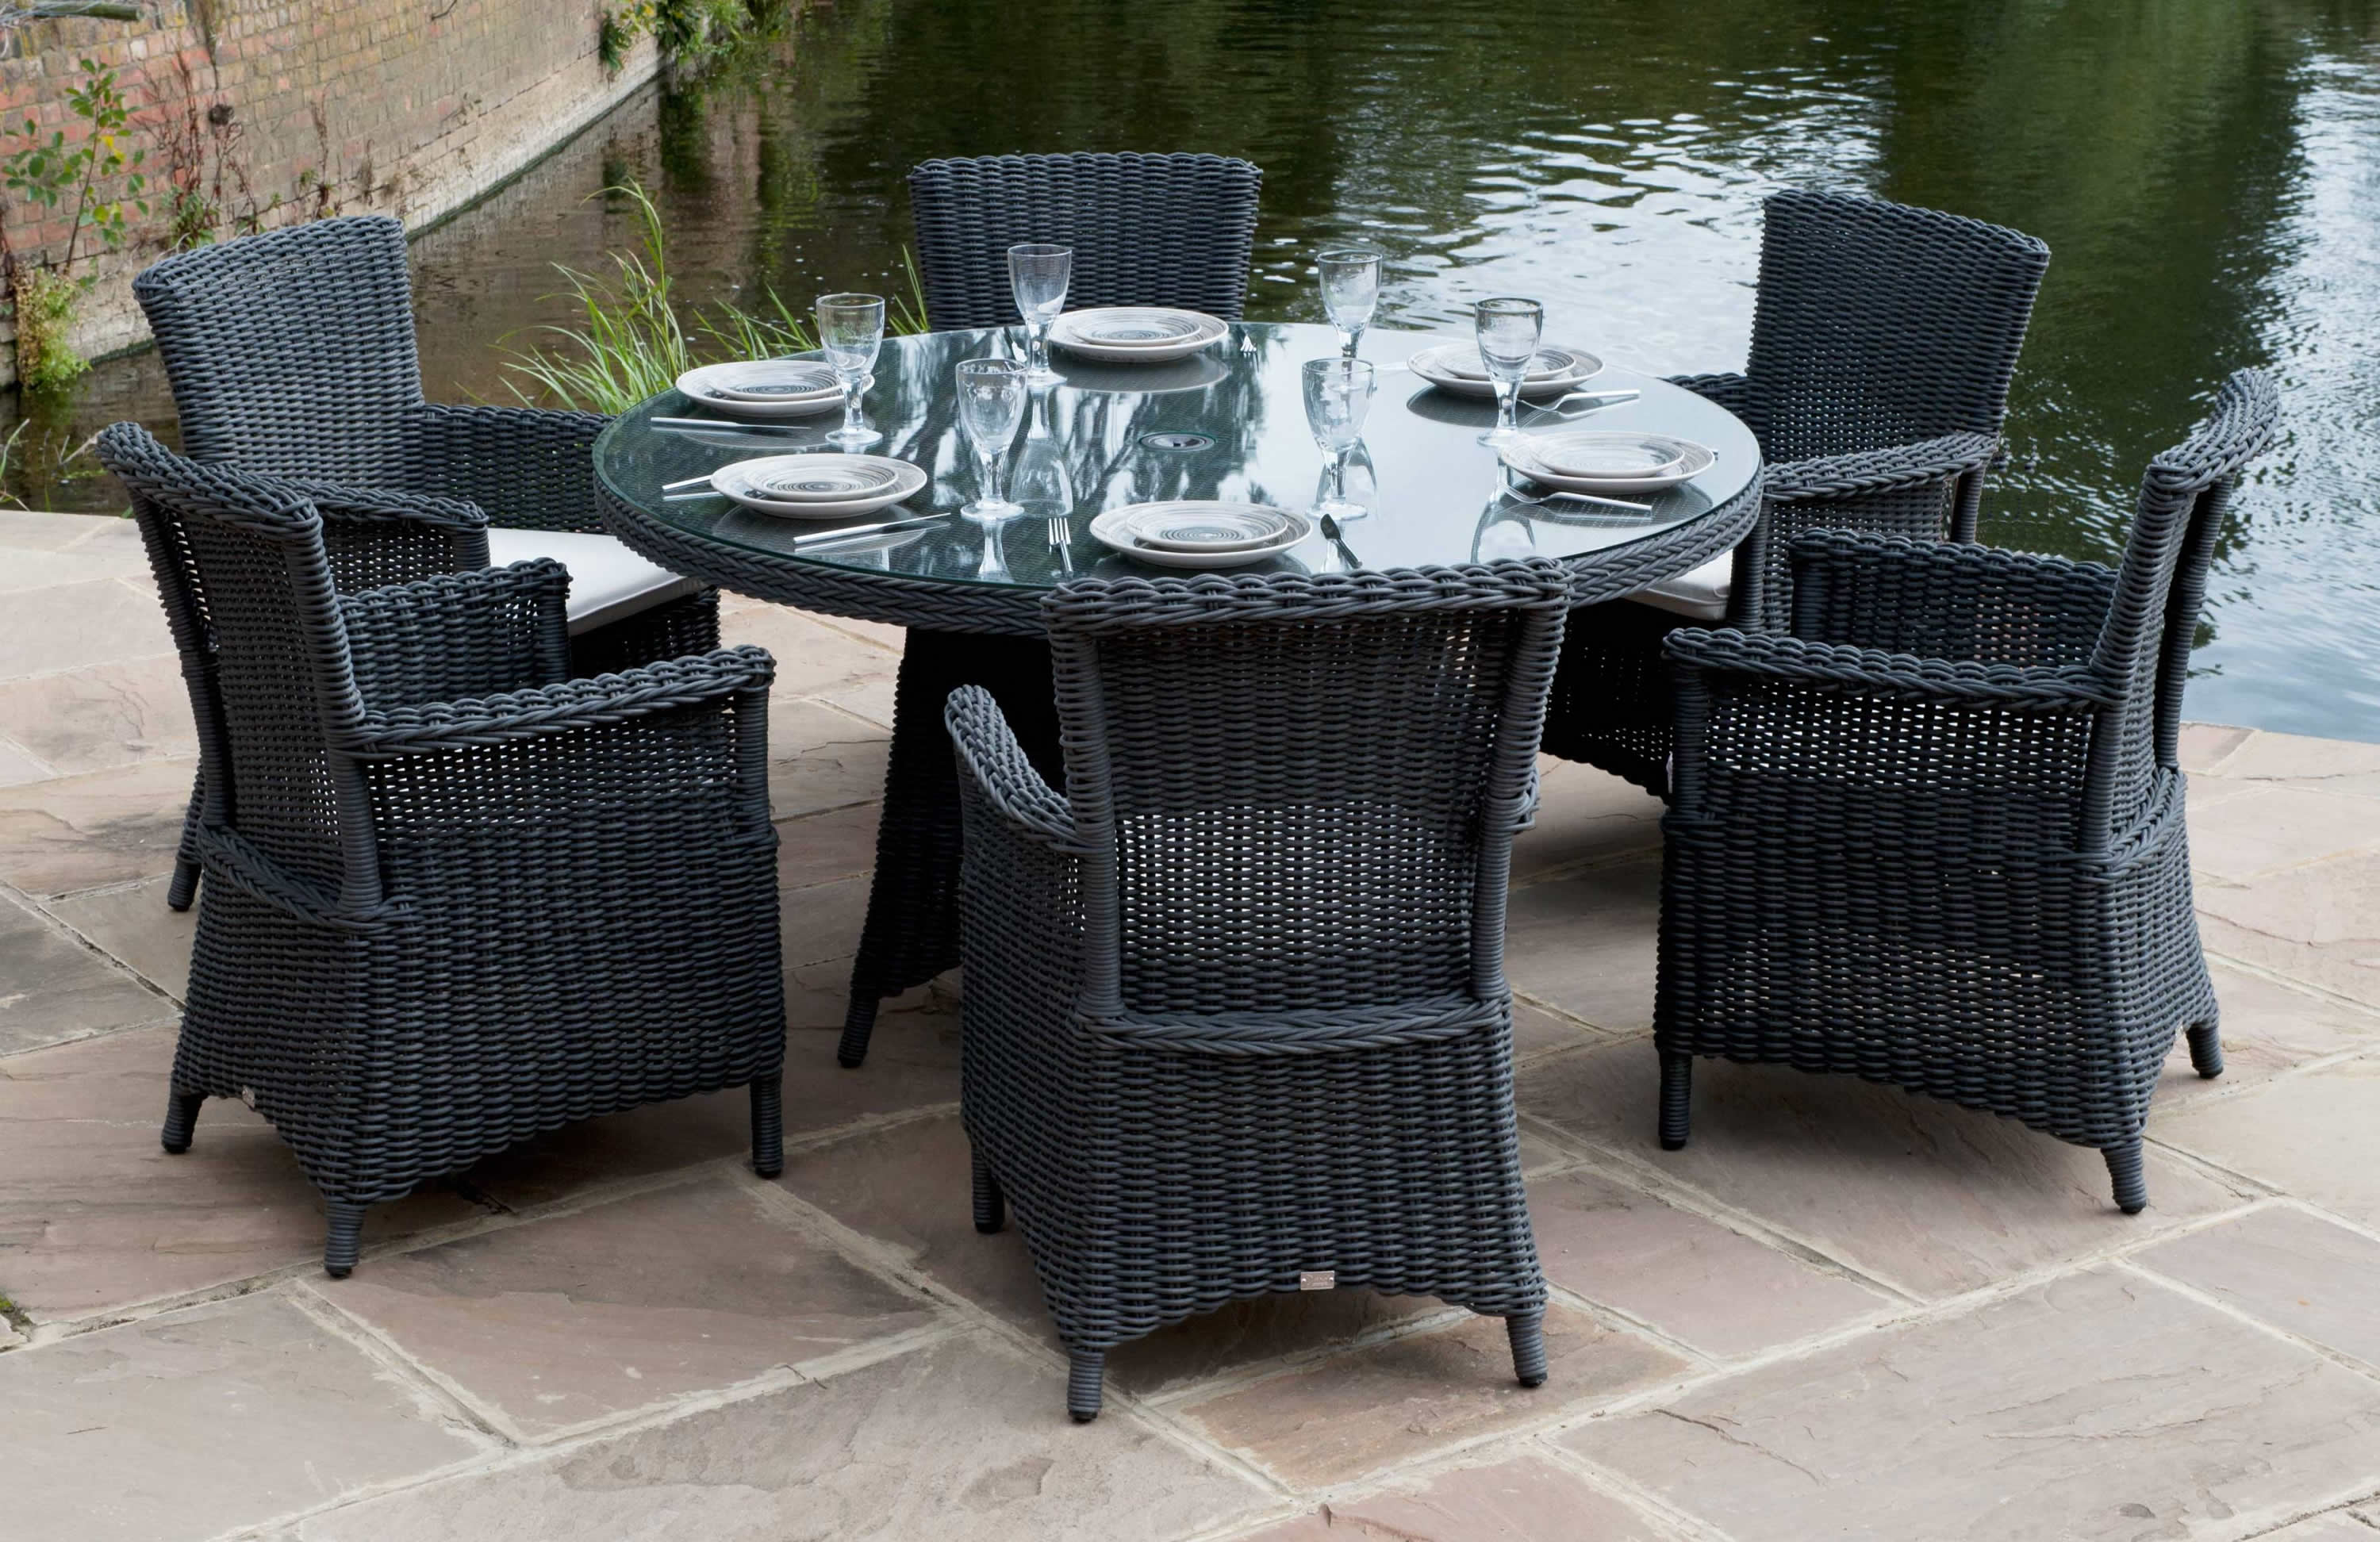 Black Bamboo Gl Round Outdoor Dining Table For 6 Set Simple Clic Chairs Natural